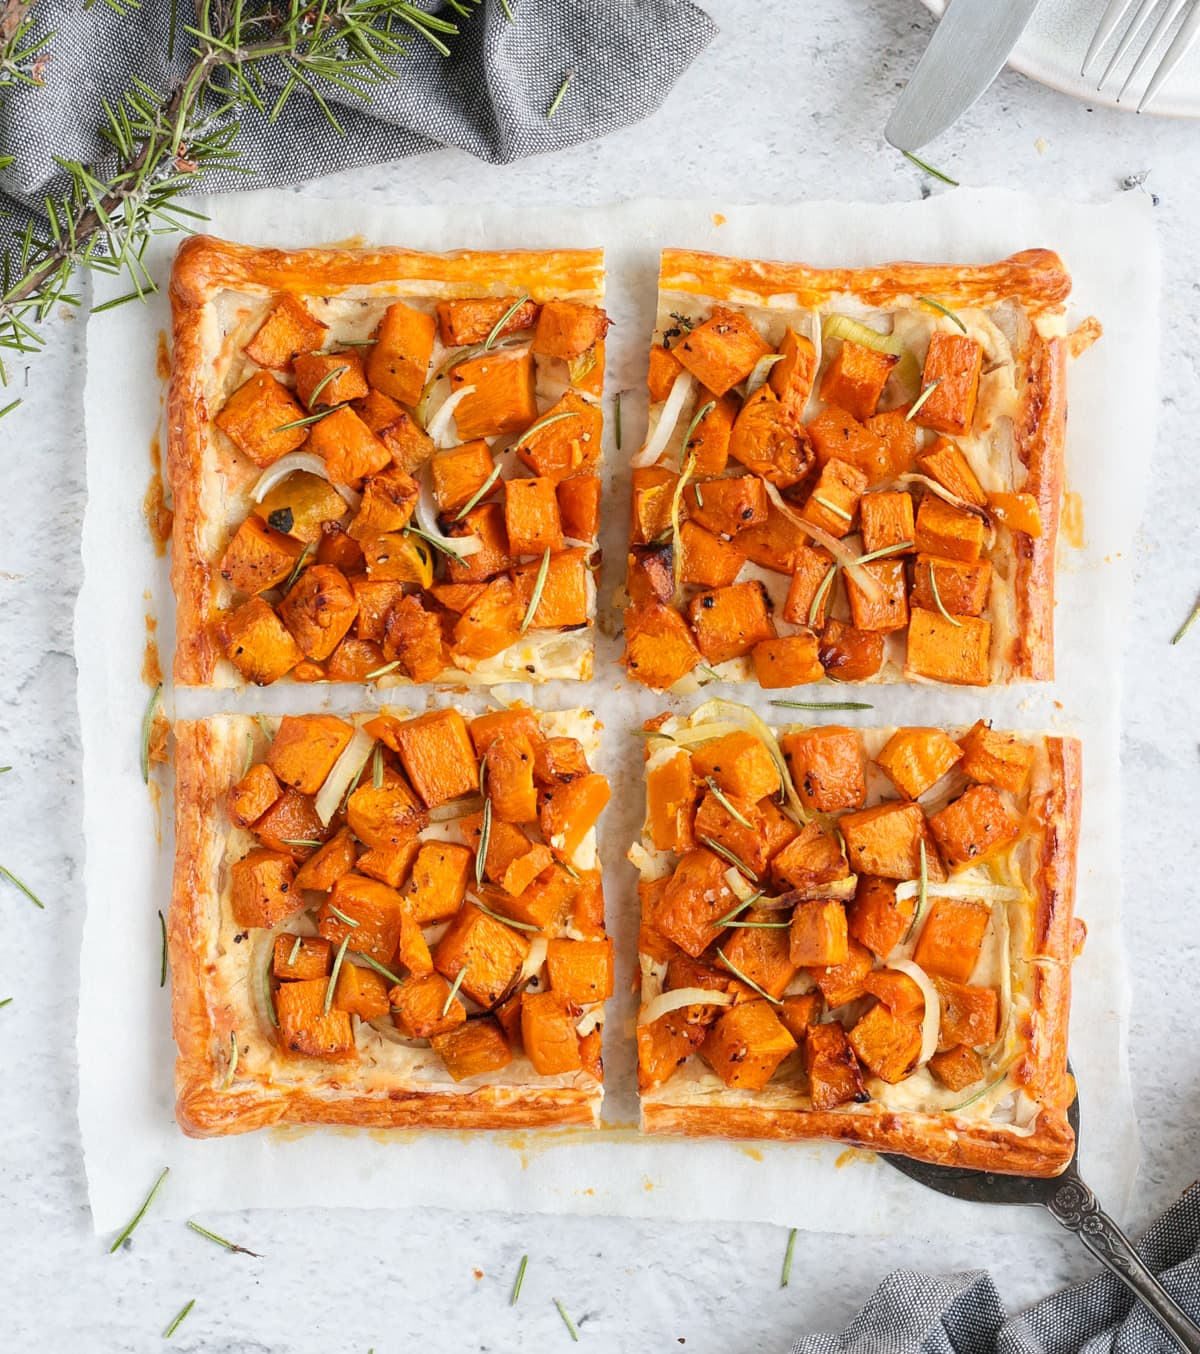 Flatlay of the pumpkin tart sliced in 4